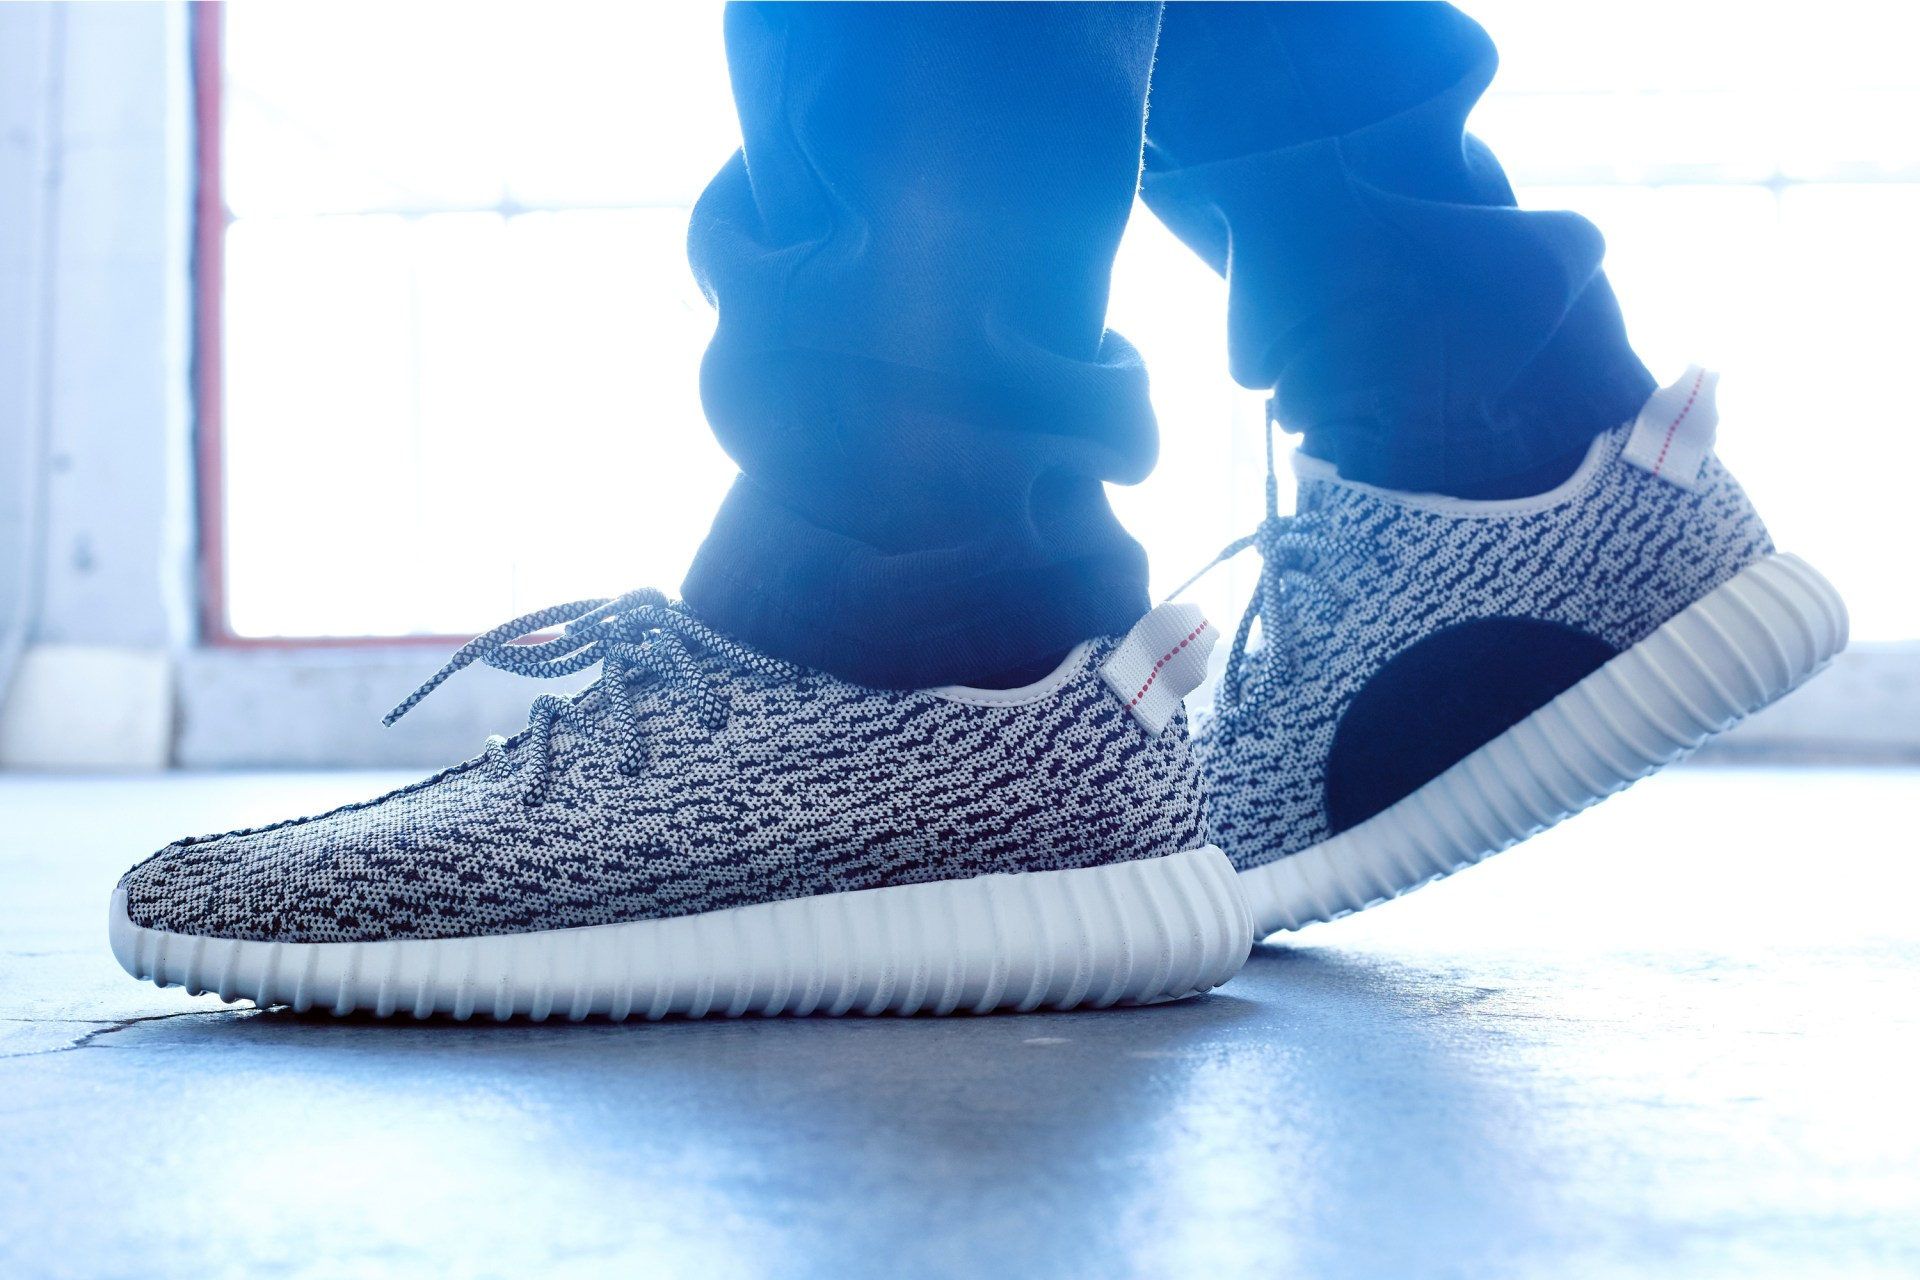 d5e5db09c5b On-Foot Look // adidas Yeezy Boost 350